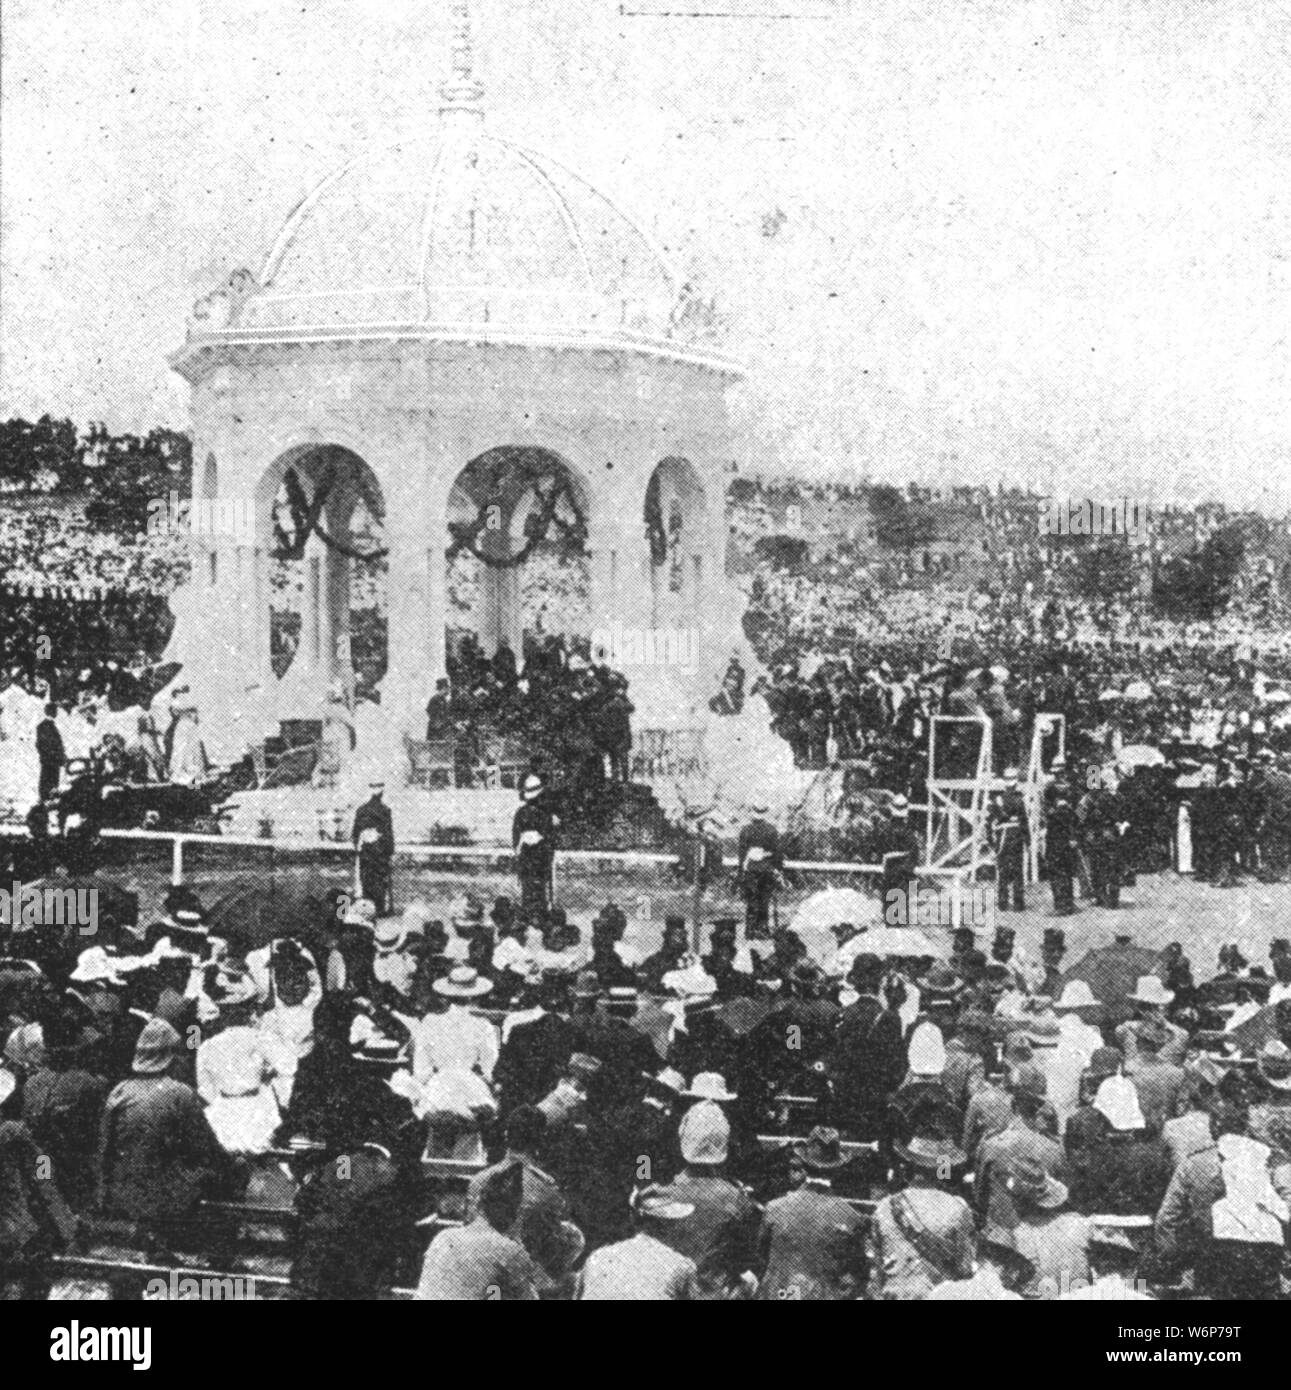 """'The Federation of Australia, 1901: The Ceremony of Signing the Oath by Lord Hopetoun at Sydney on New Year's Day', 1901. John Hope, 7th Earl of Hopetoun (1860-1908), the first Governor-General of Australia, officiates at the Inauguration of the Commonwealth of Australia at Centennial Park, Sydney. (The Federation of Australia was the process by which the six separate British self-governing colonies of Queensland, New South Wales, Victoria, Tasmania, South Australia, and Western Australia, agreed to unite and form the Commonwealth of Australia). From """"The Illustrated London News Record of Stock Photo"""